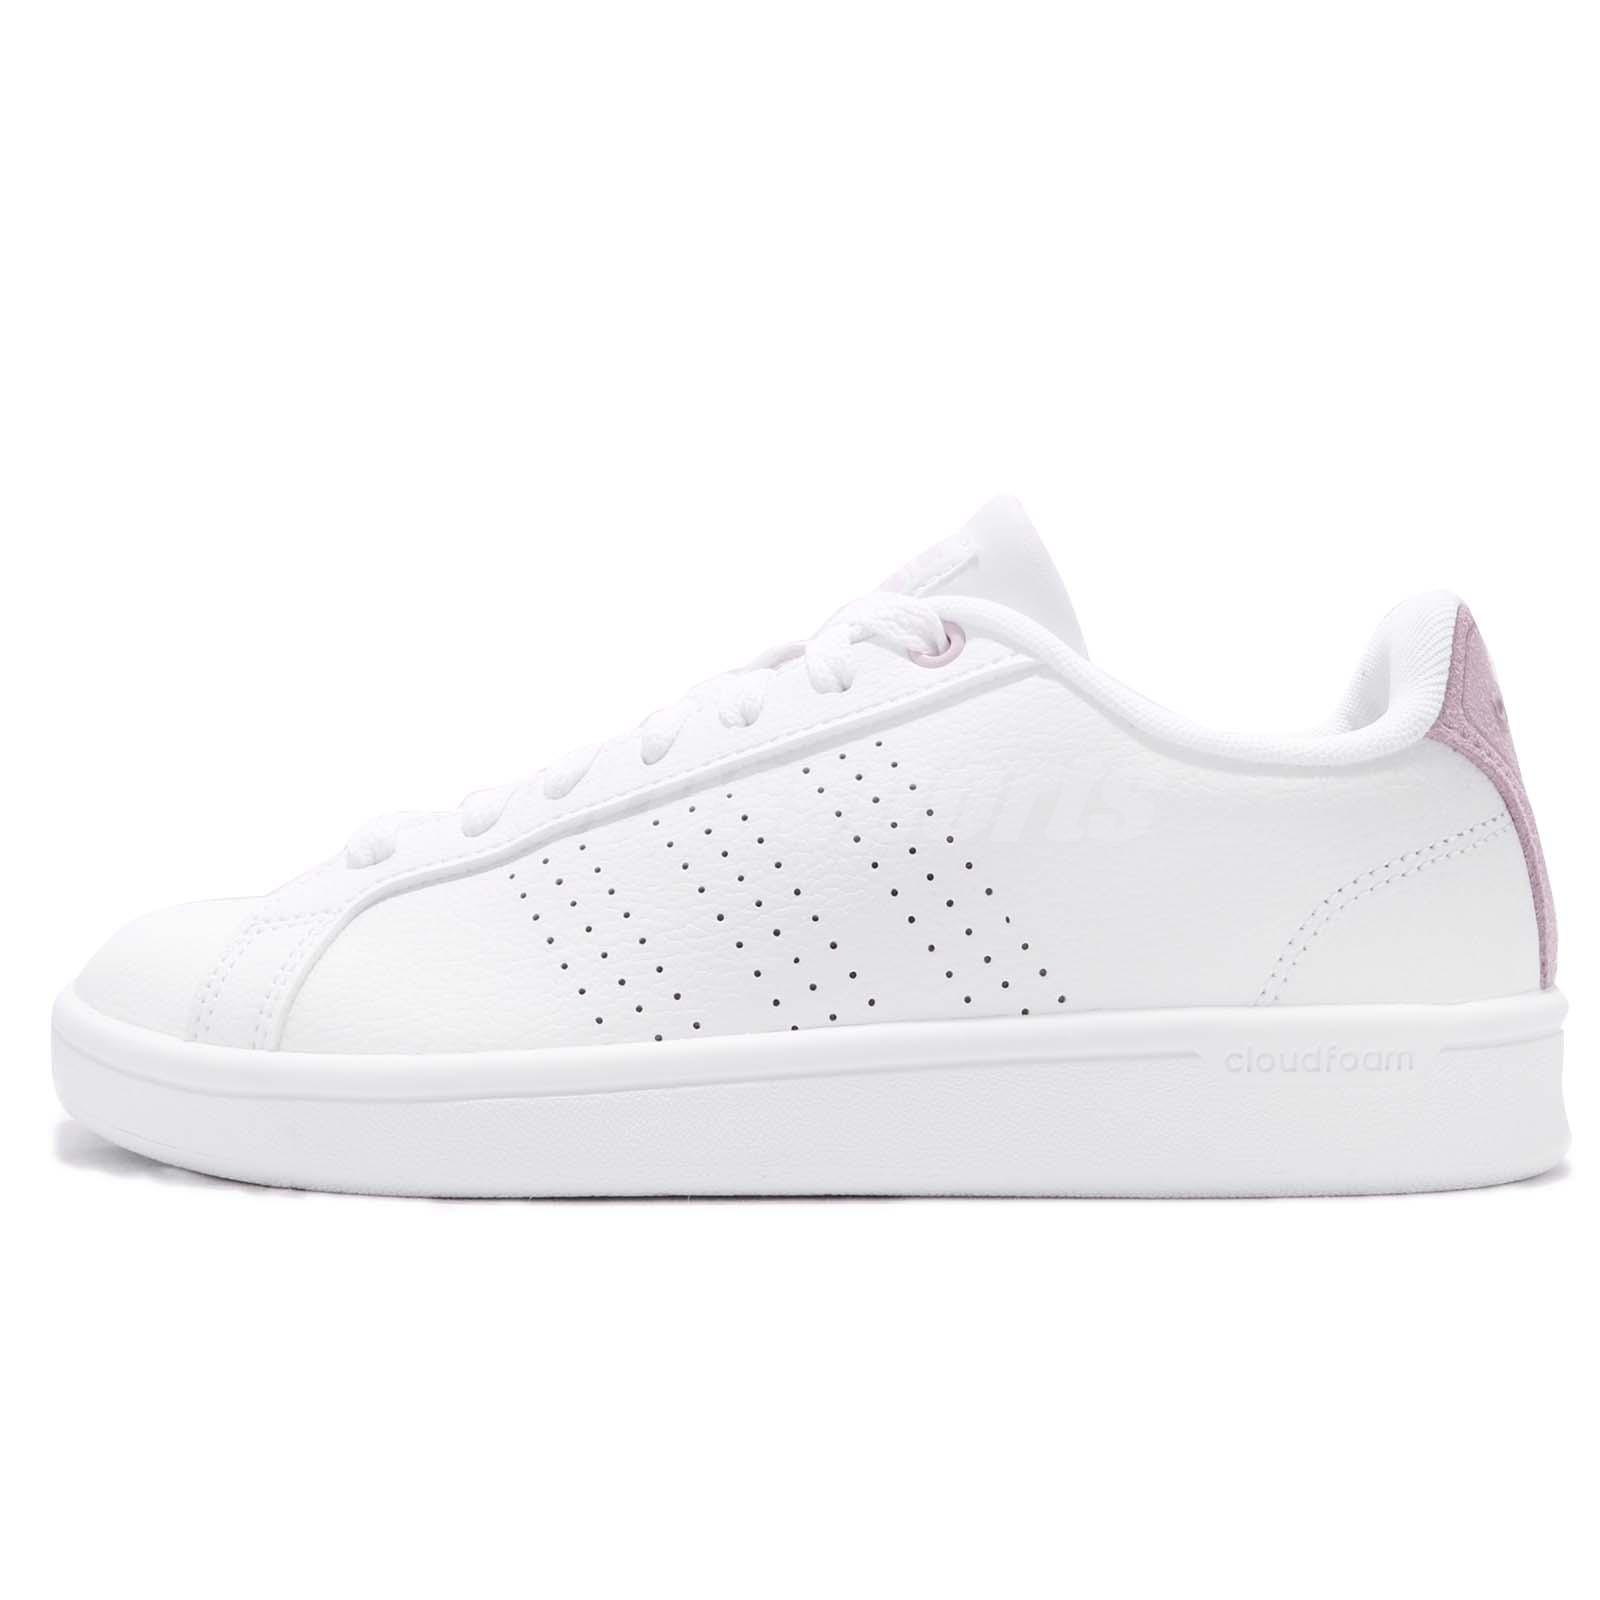 super populair fabriek jongen Details about adidas CF Advantage CL CloudFoam White Pink Women Casual  Shoes Sneakers DB0893